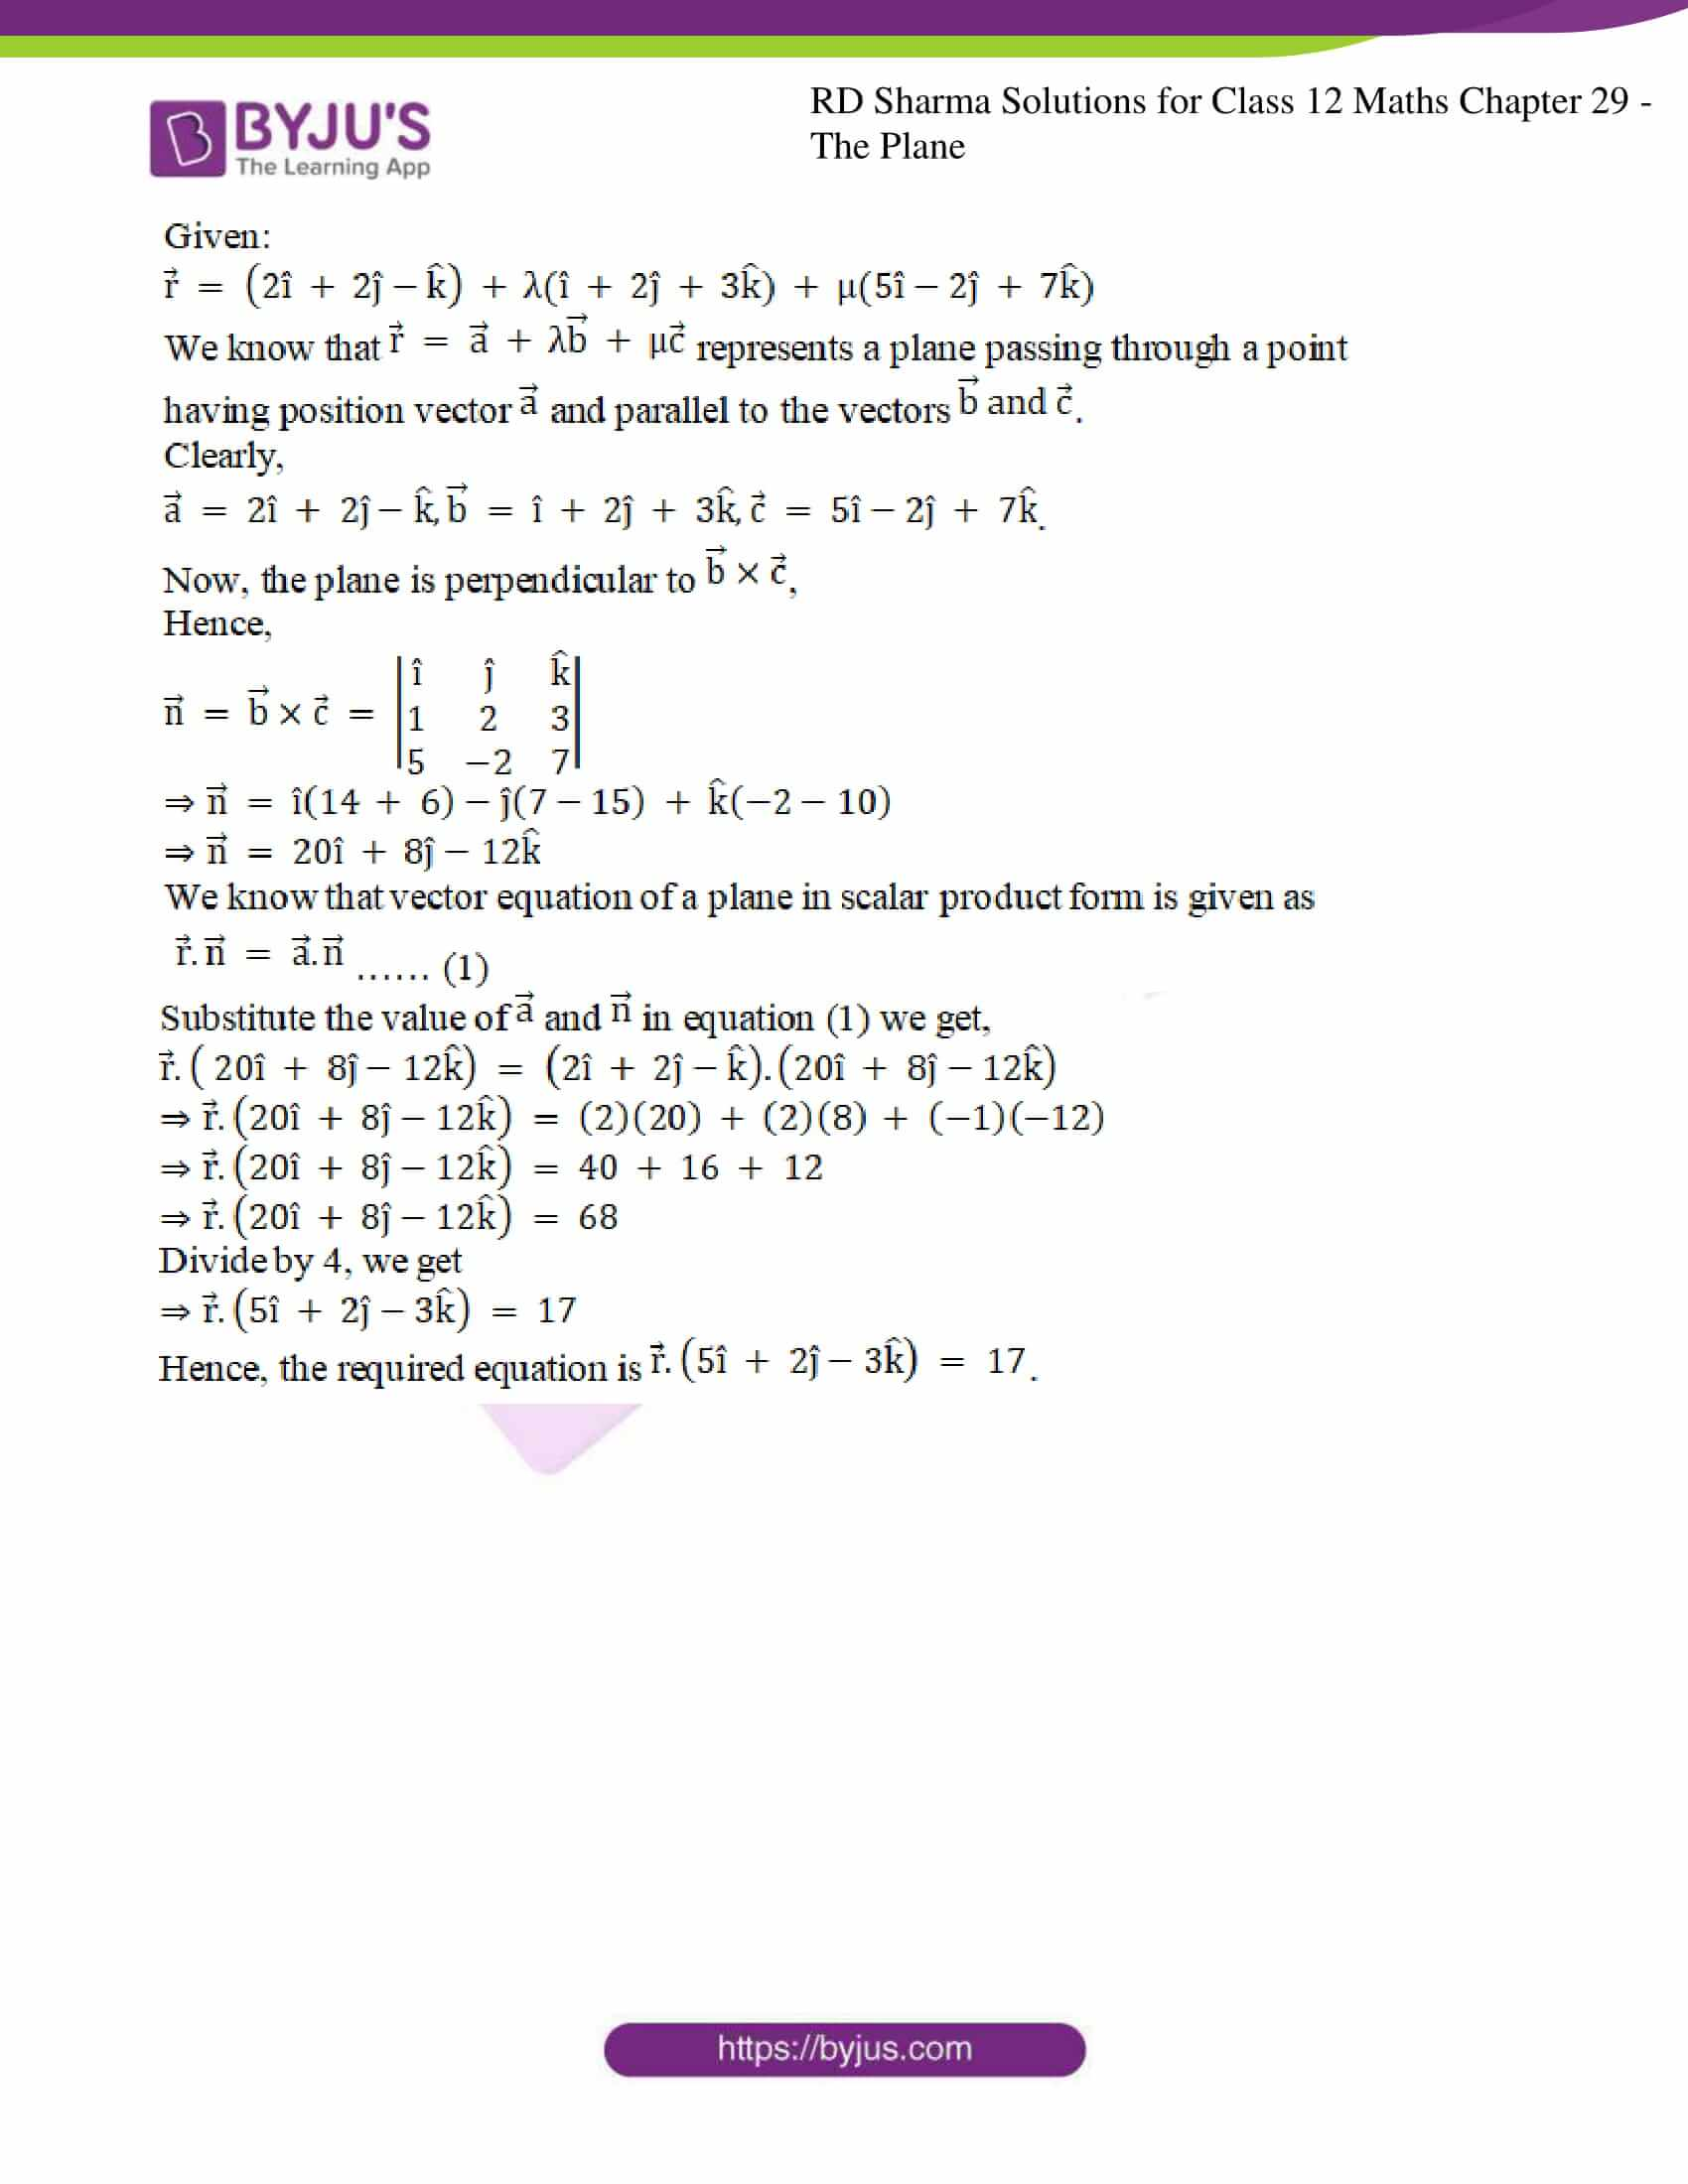 rd sharma solutions for class 12 maths chapter 29 ex 7 7